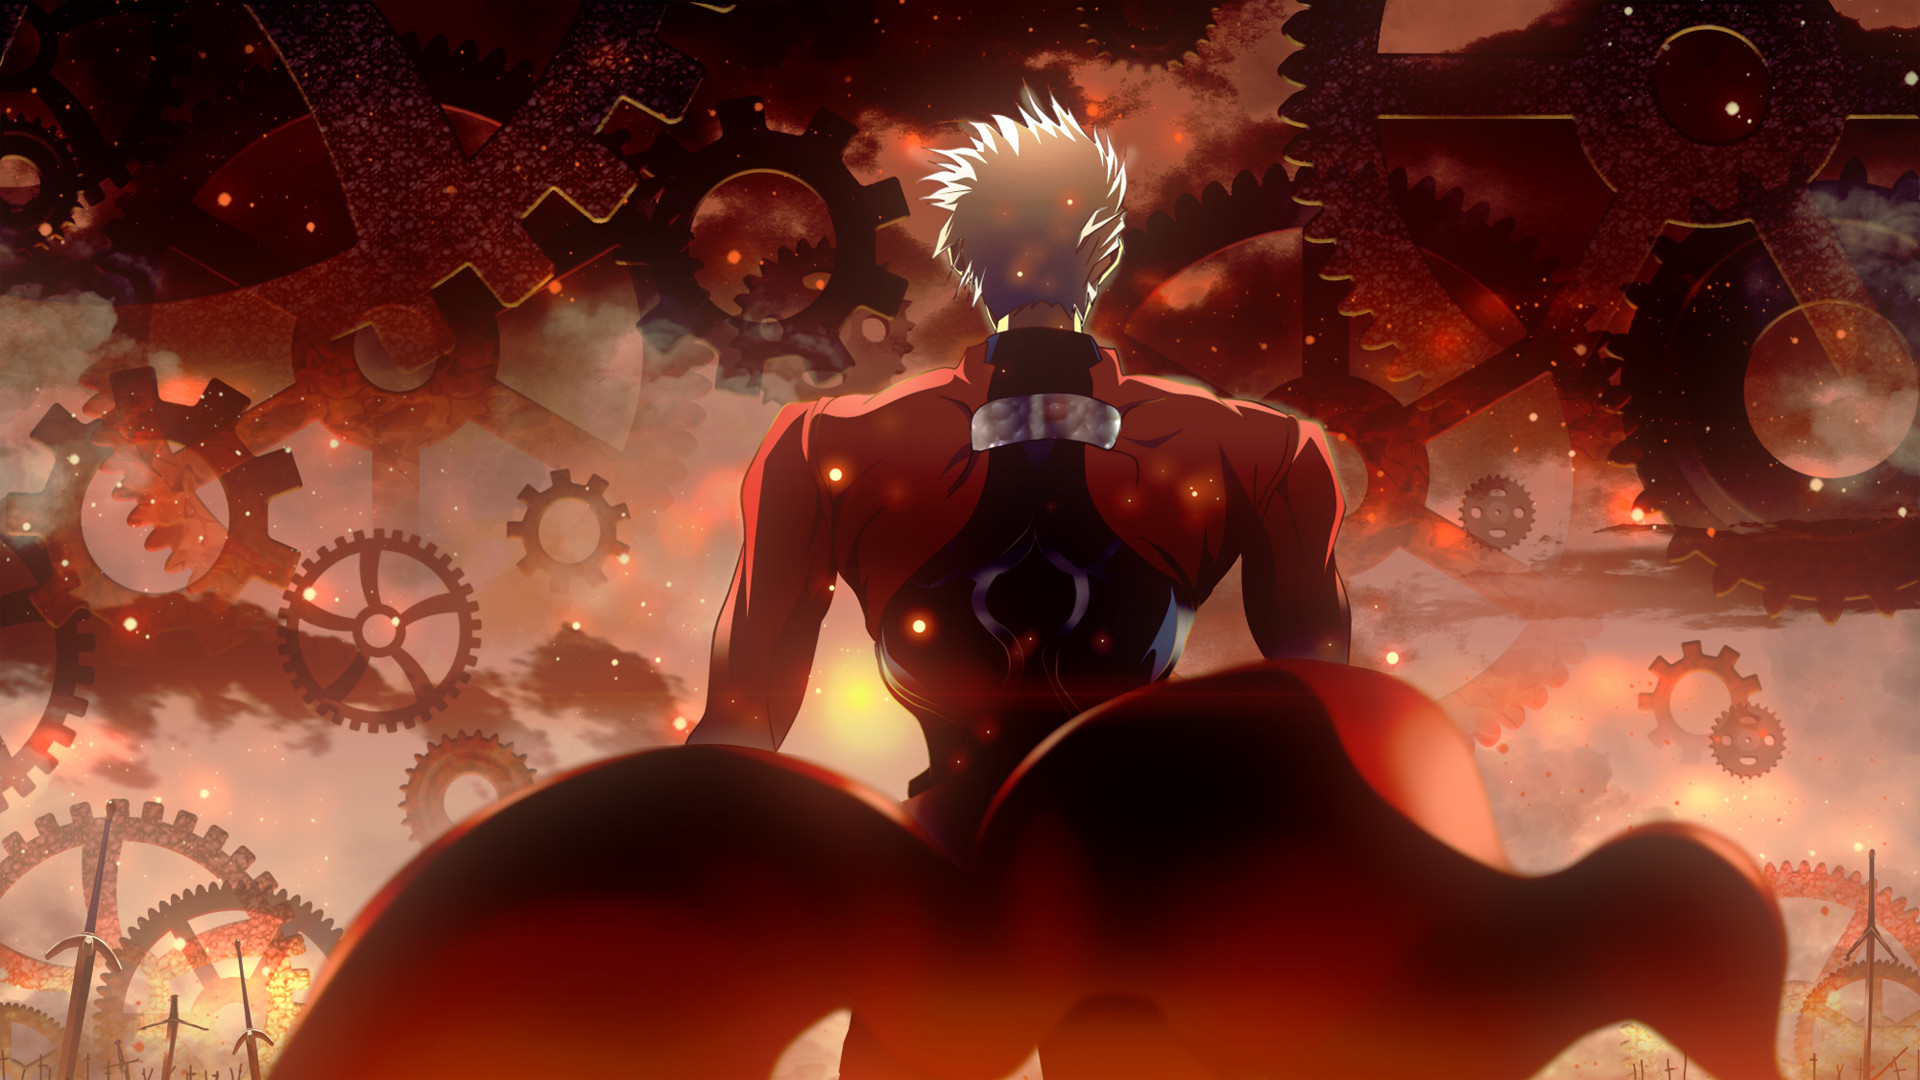 1920x1080 Anime - Fate/Stay Night: Unlimited Blade Works Archer (Fate/Stay Night